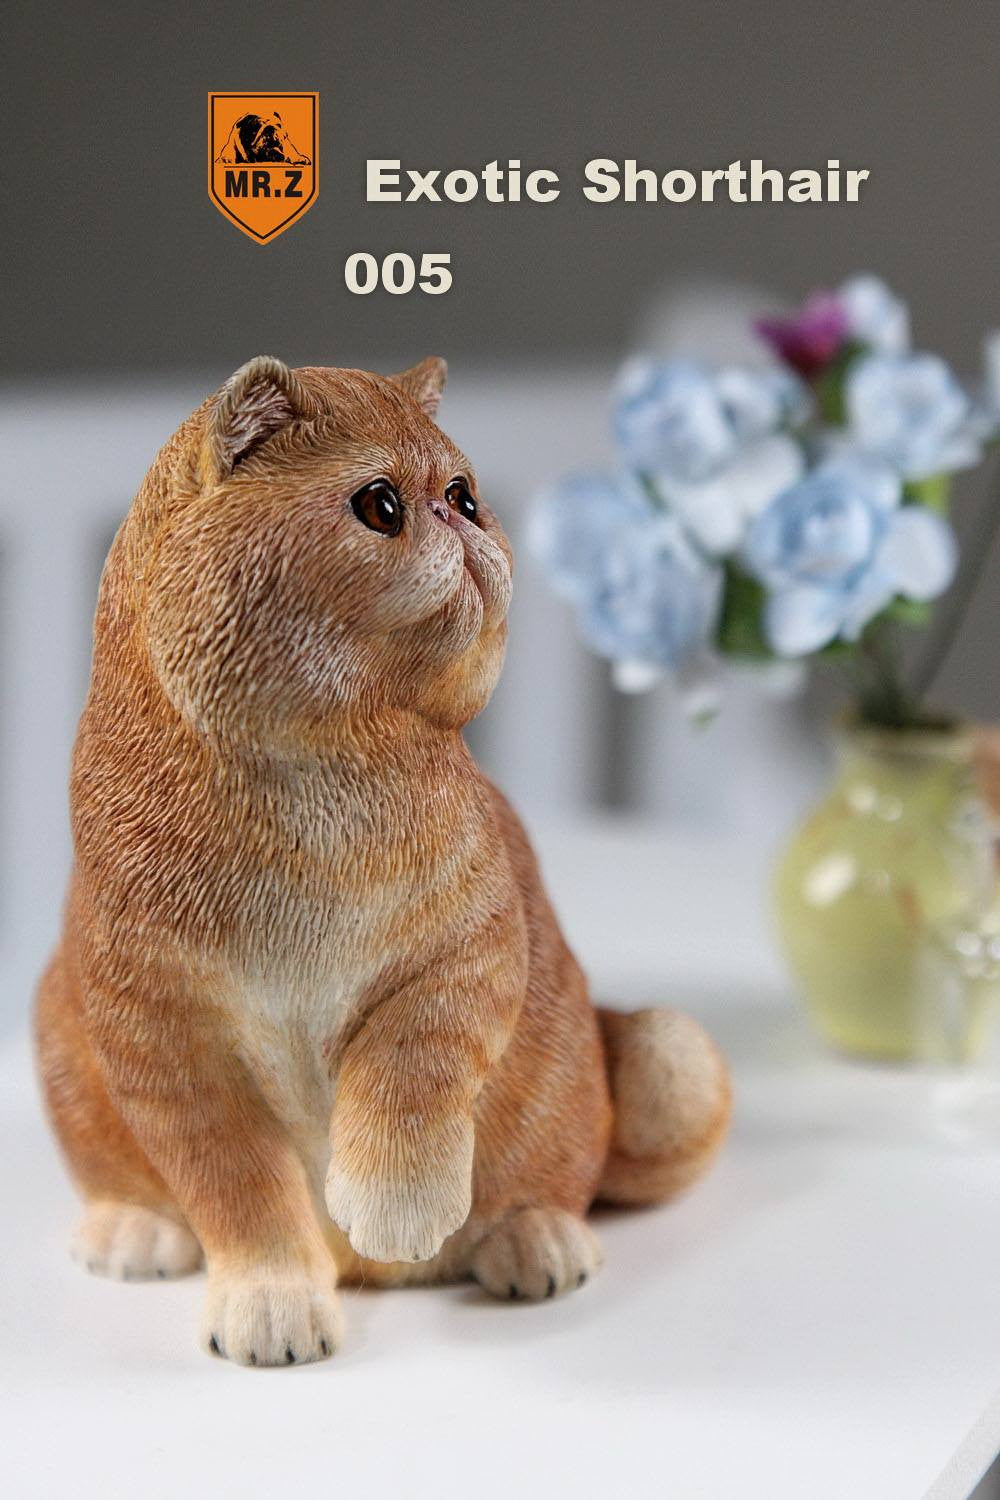 MR.Z - Real Animal Series No.8 - 1/6th Scale Exotic Shorthair Cat (Garfield) 001-005 - Marvelous Toys - 32